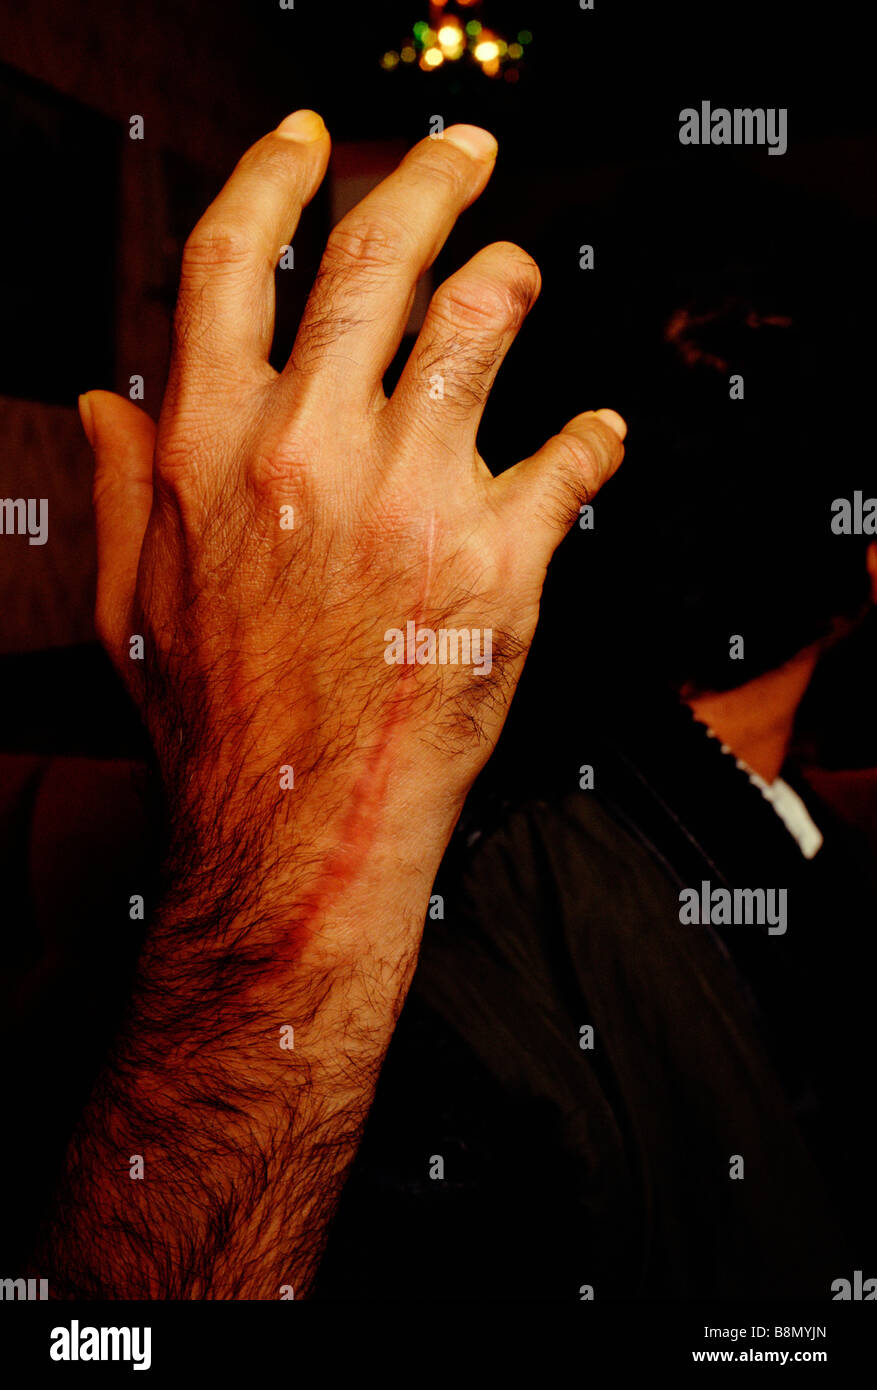 Brick Lane, London, England: An Asian victim of a racist attack displays the scar left on his hand. - Stock Image